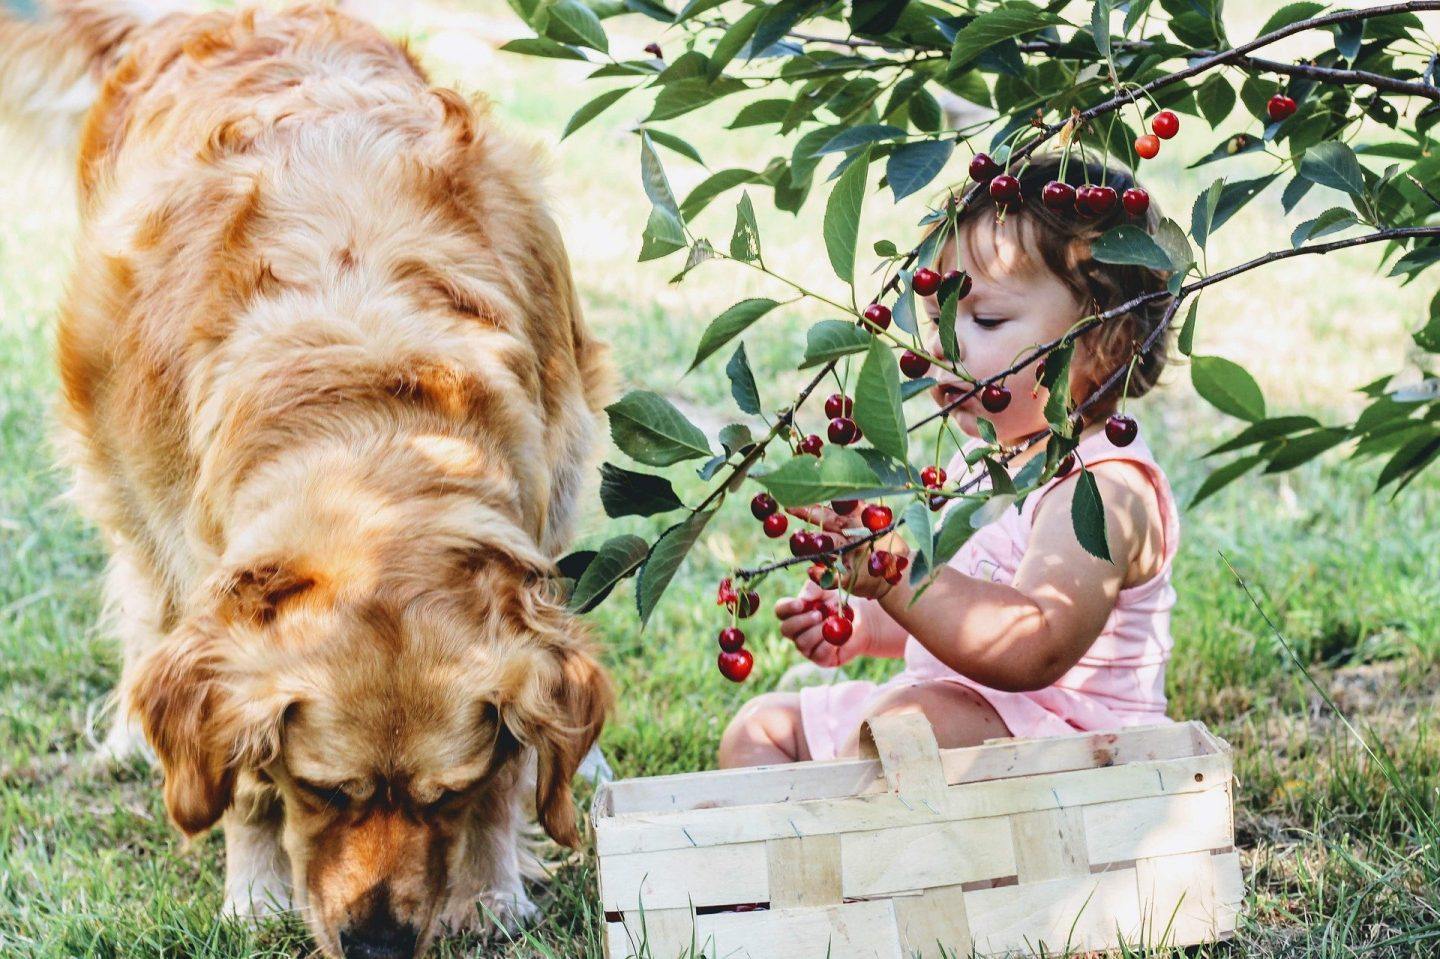 A little girl picking cherries with a dog